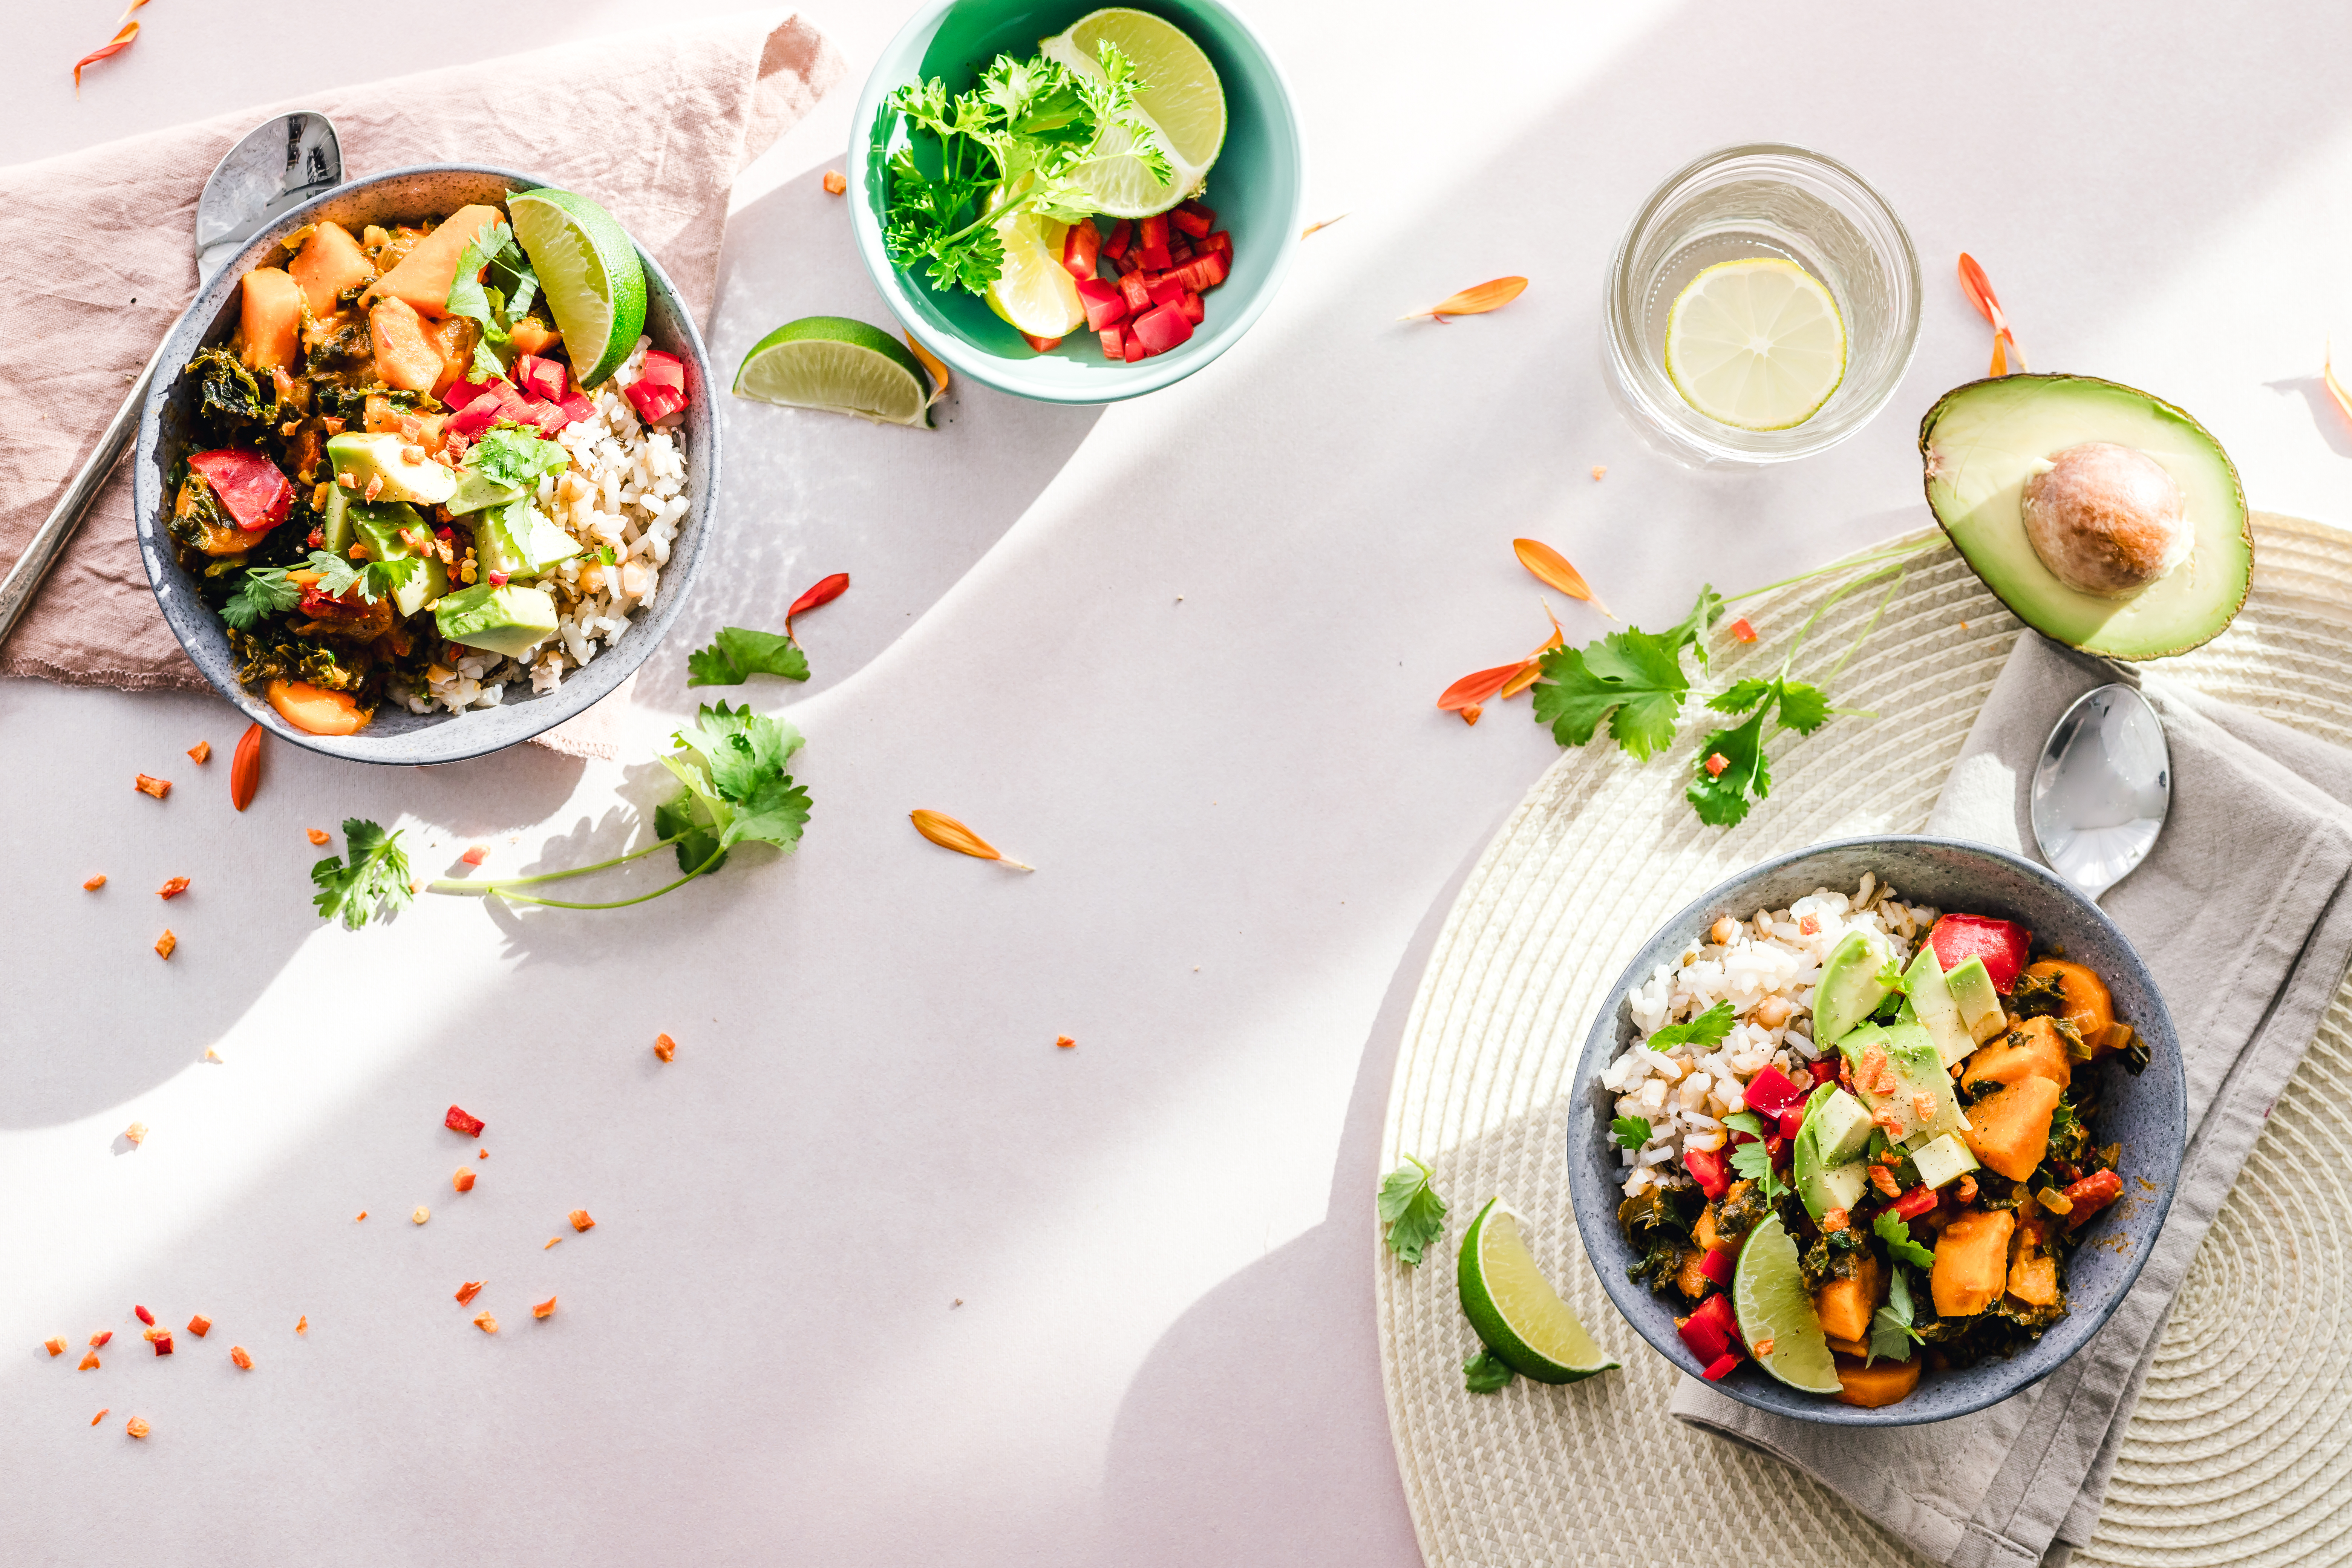 From the Hawaiian sea to our metropolis: we love pokè bowls